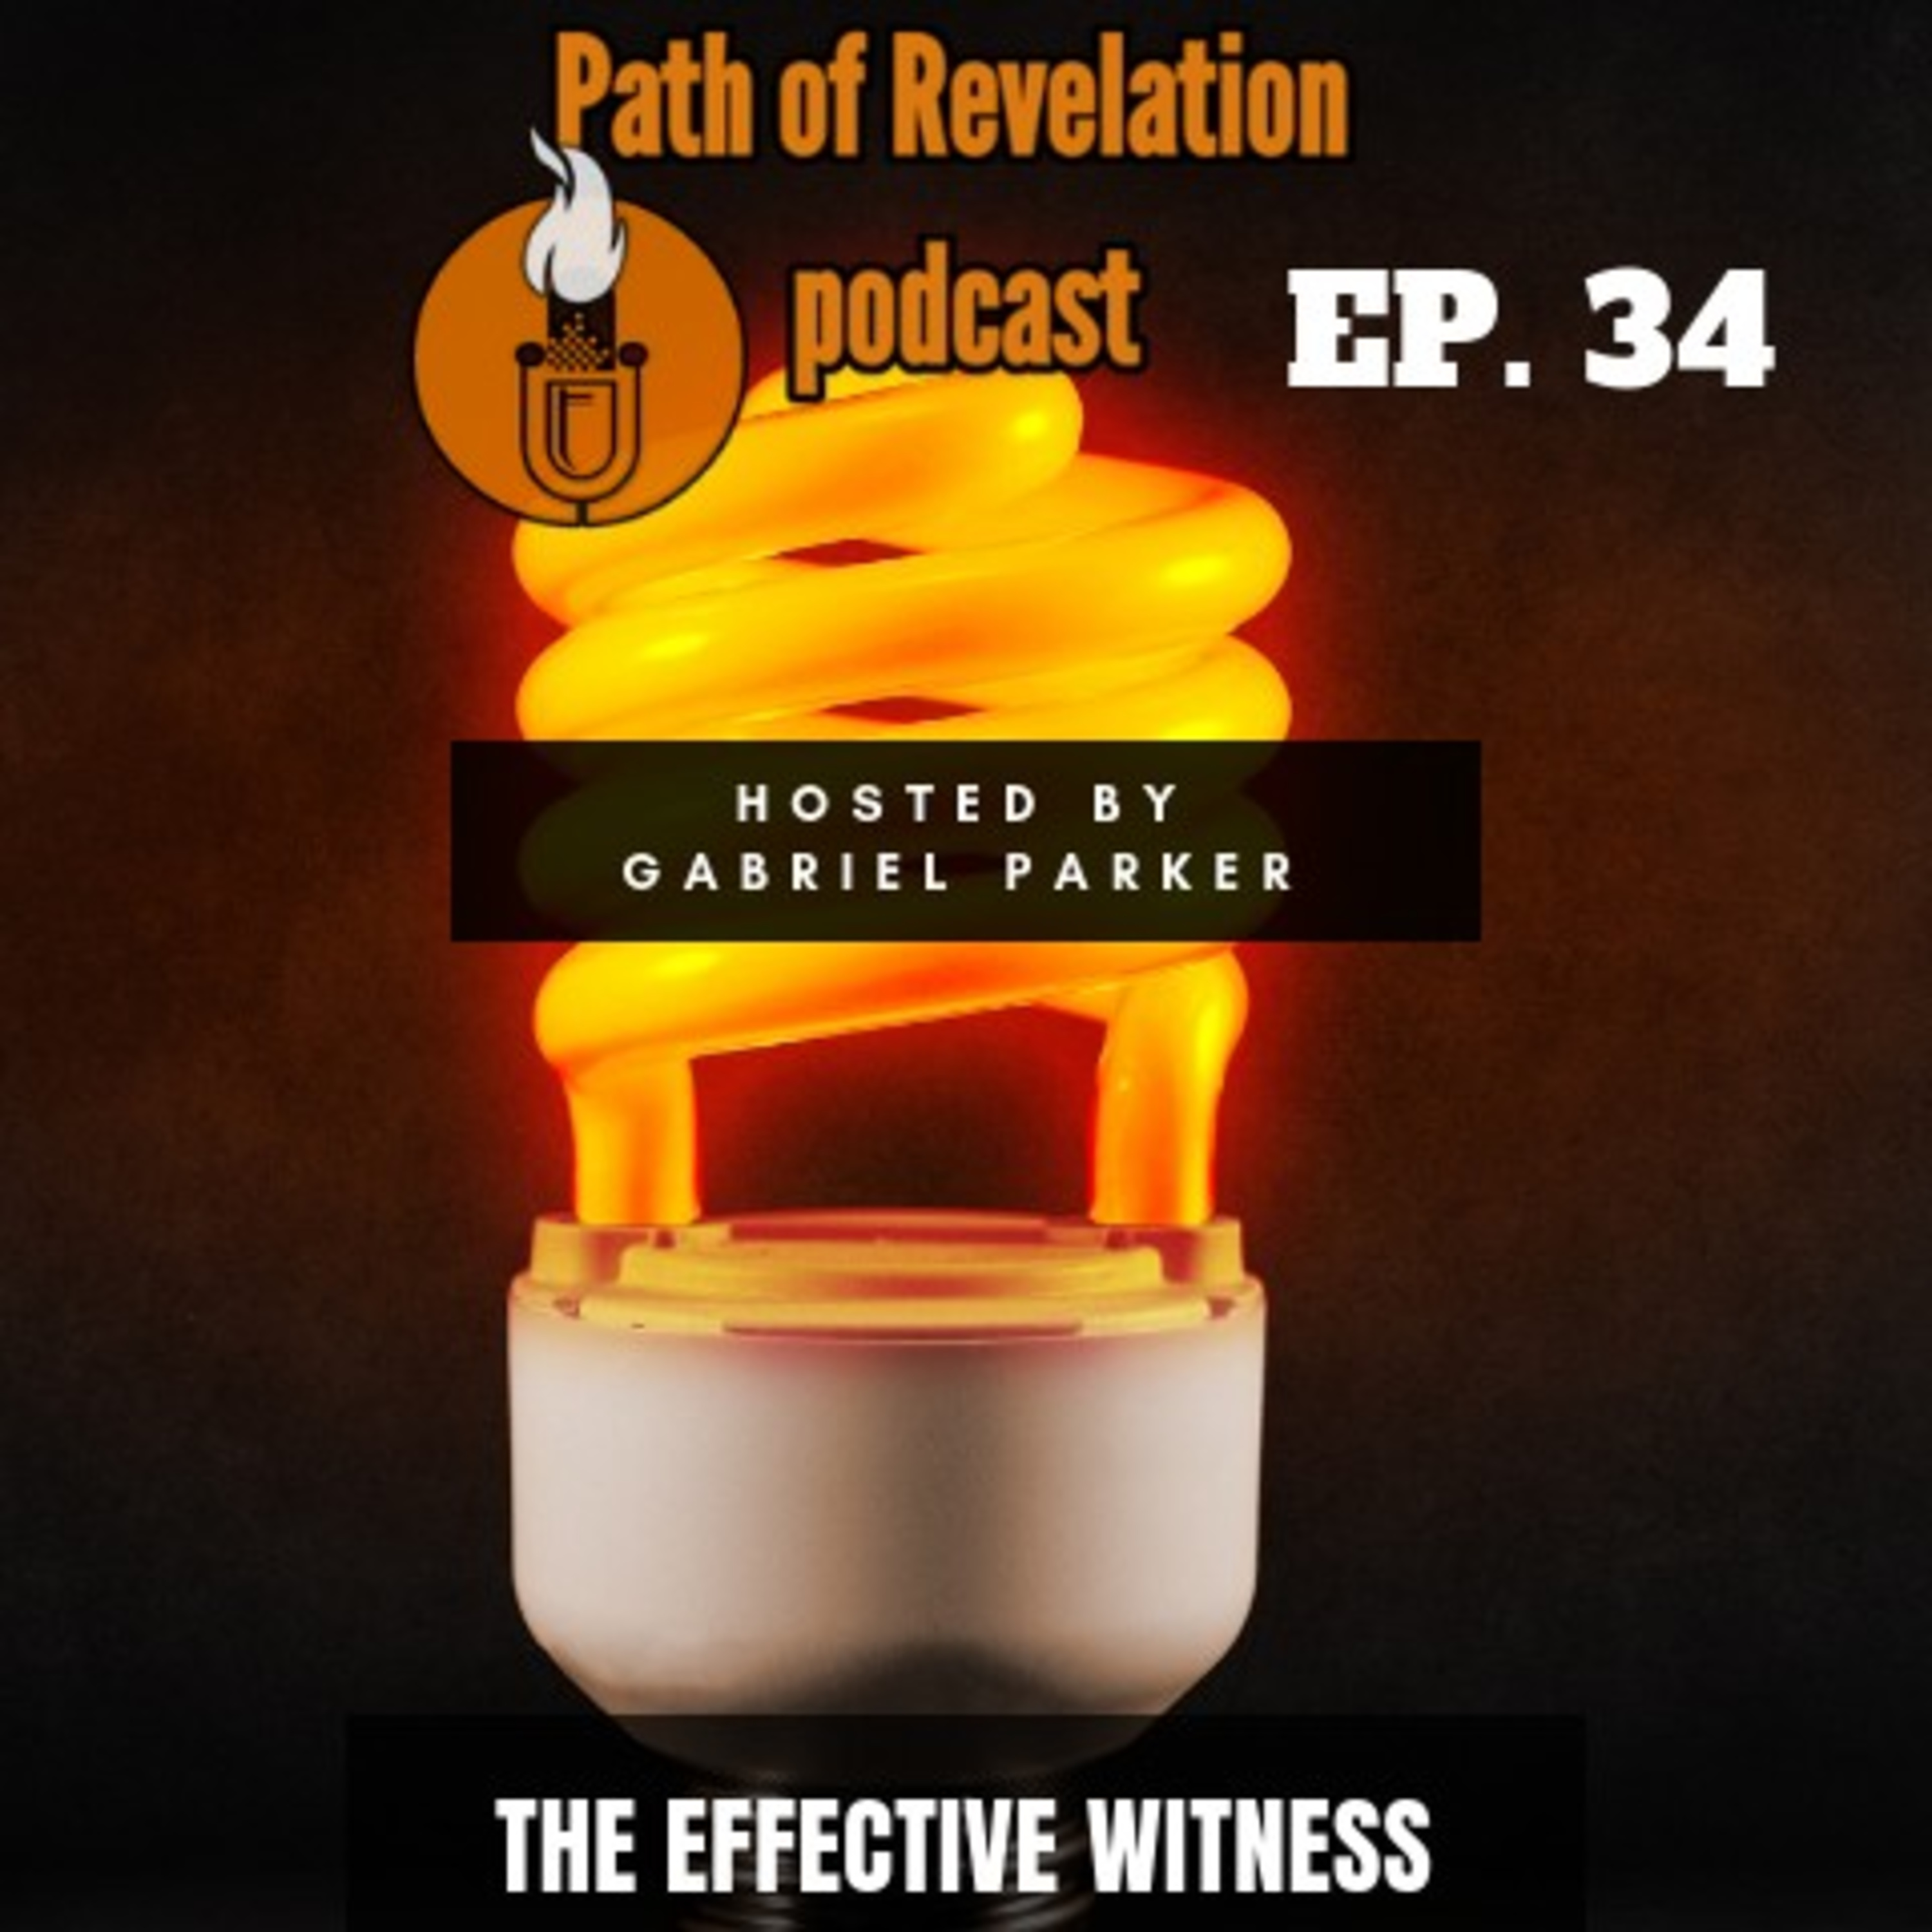 Path of Revelation Podcast: Episode 34